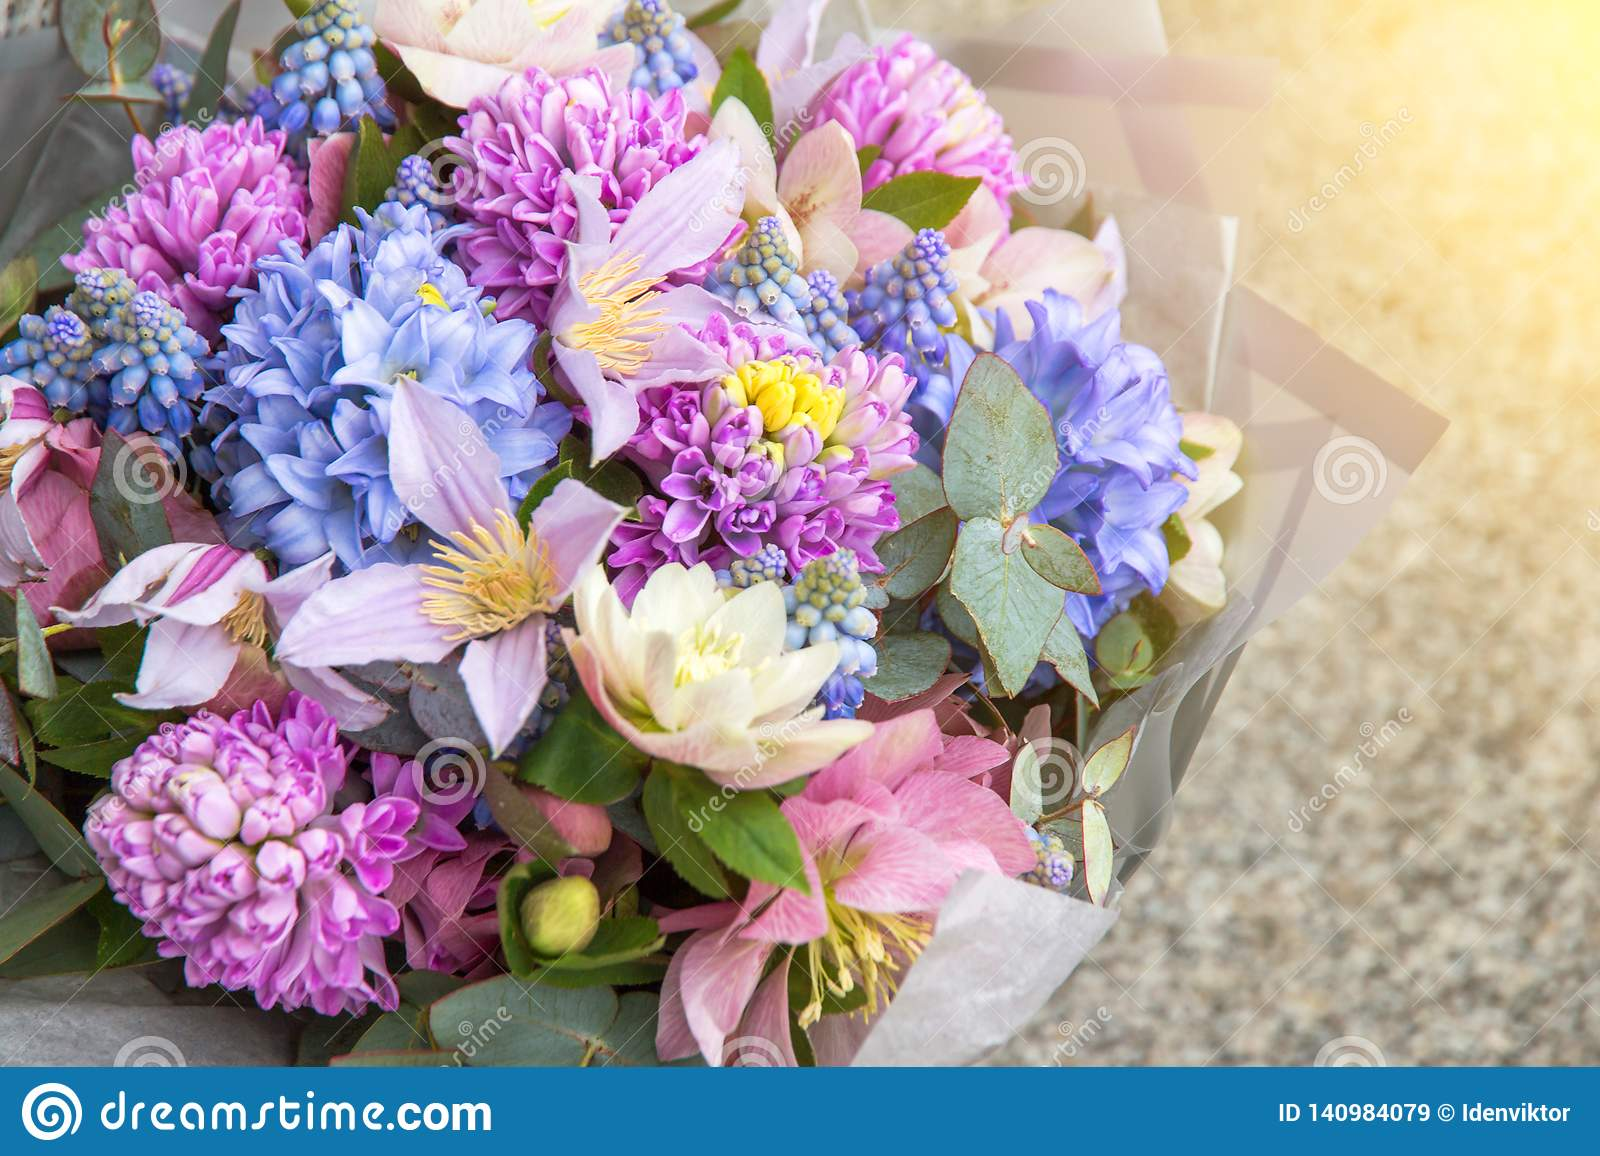 Beautiful Elegant Designer Pink Purple Blue Bouquet Of Florist With Different Flowers Close Up Floral Background Stock Image Image Of Beauty Exquisite 140984079